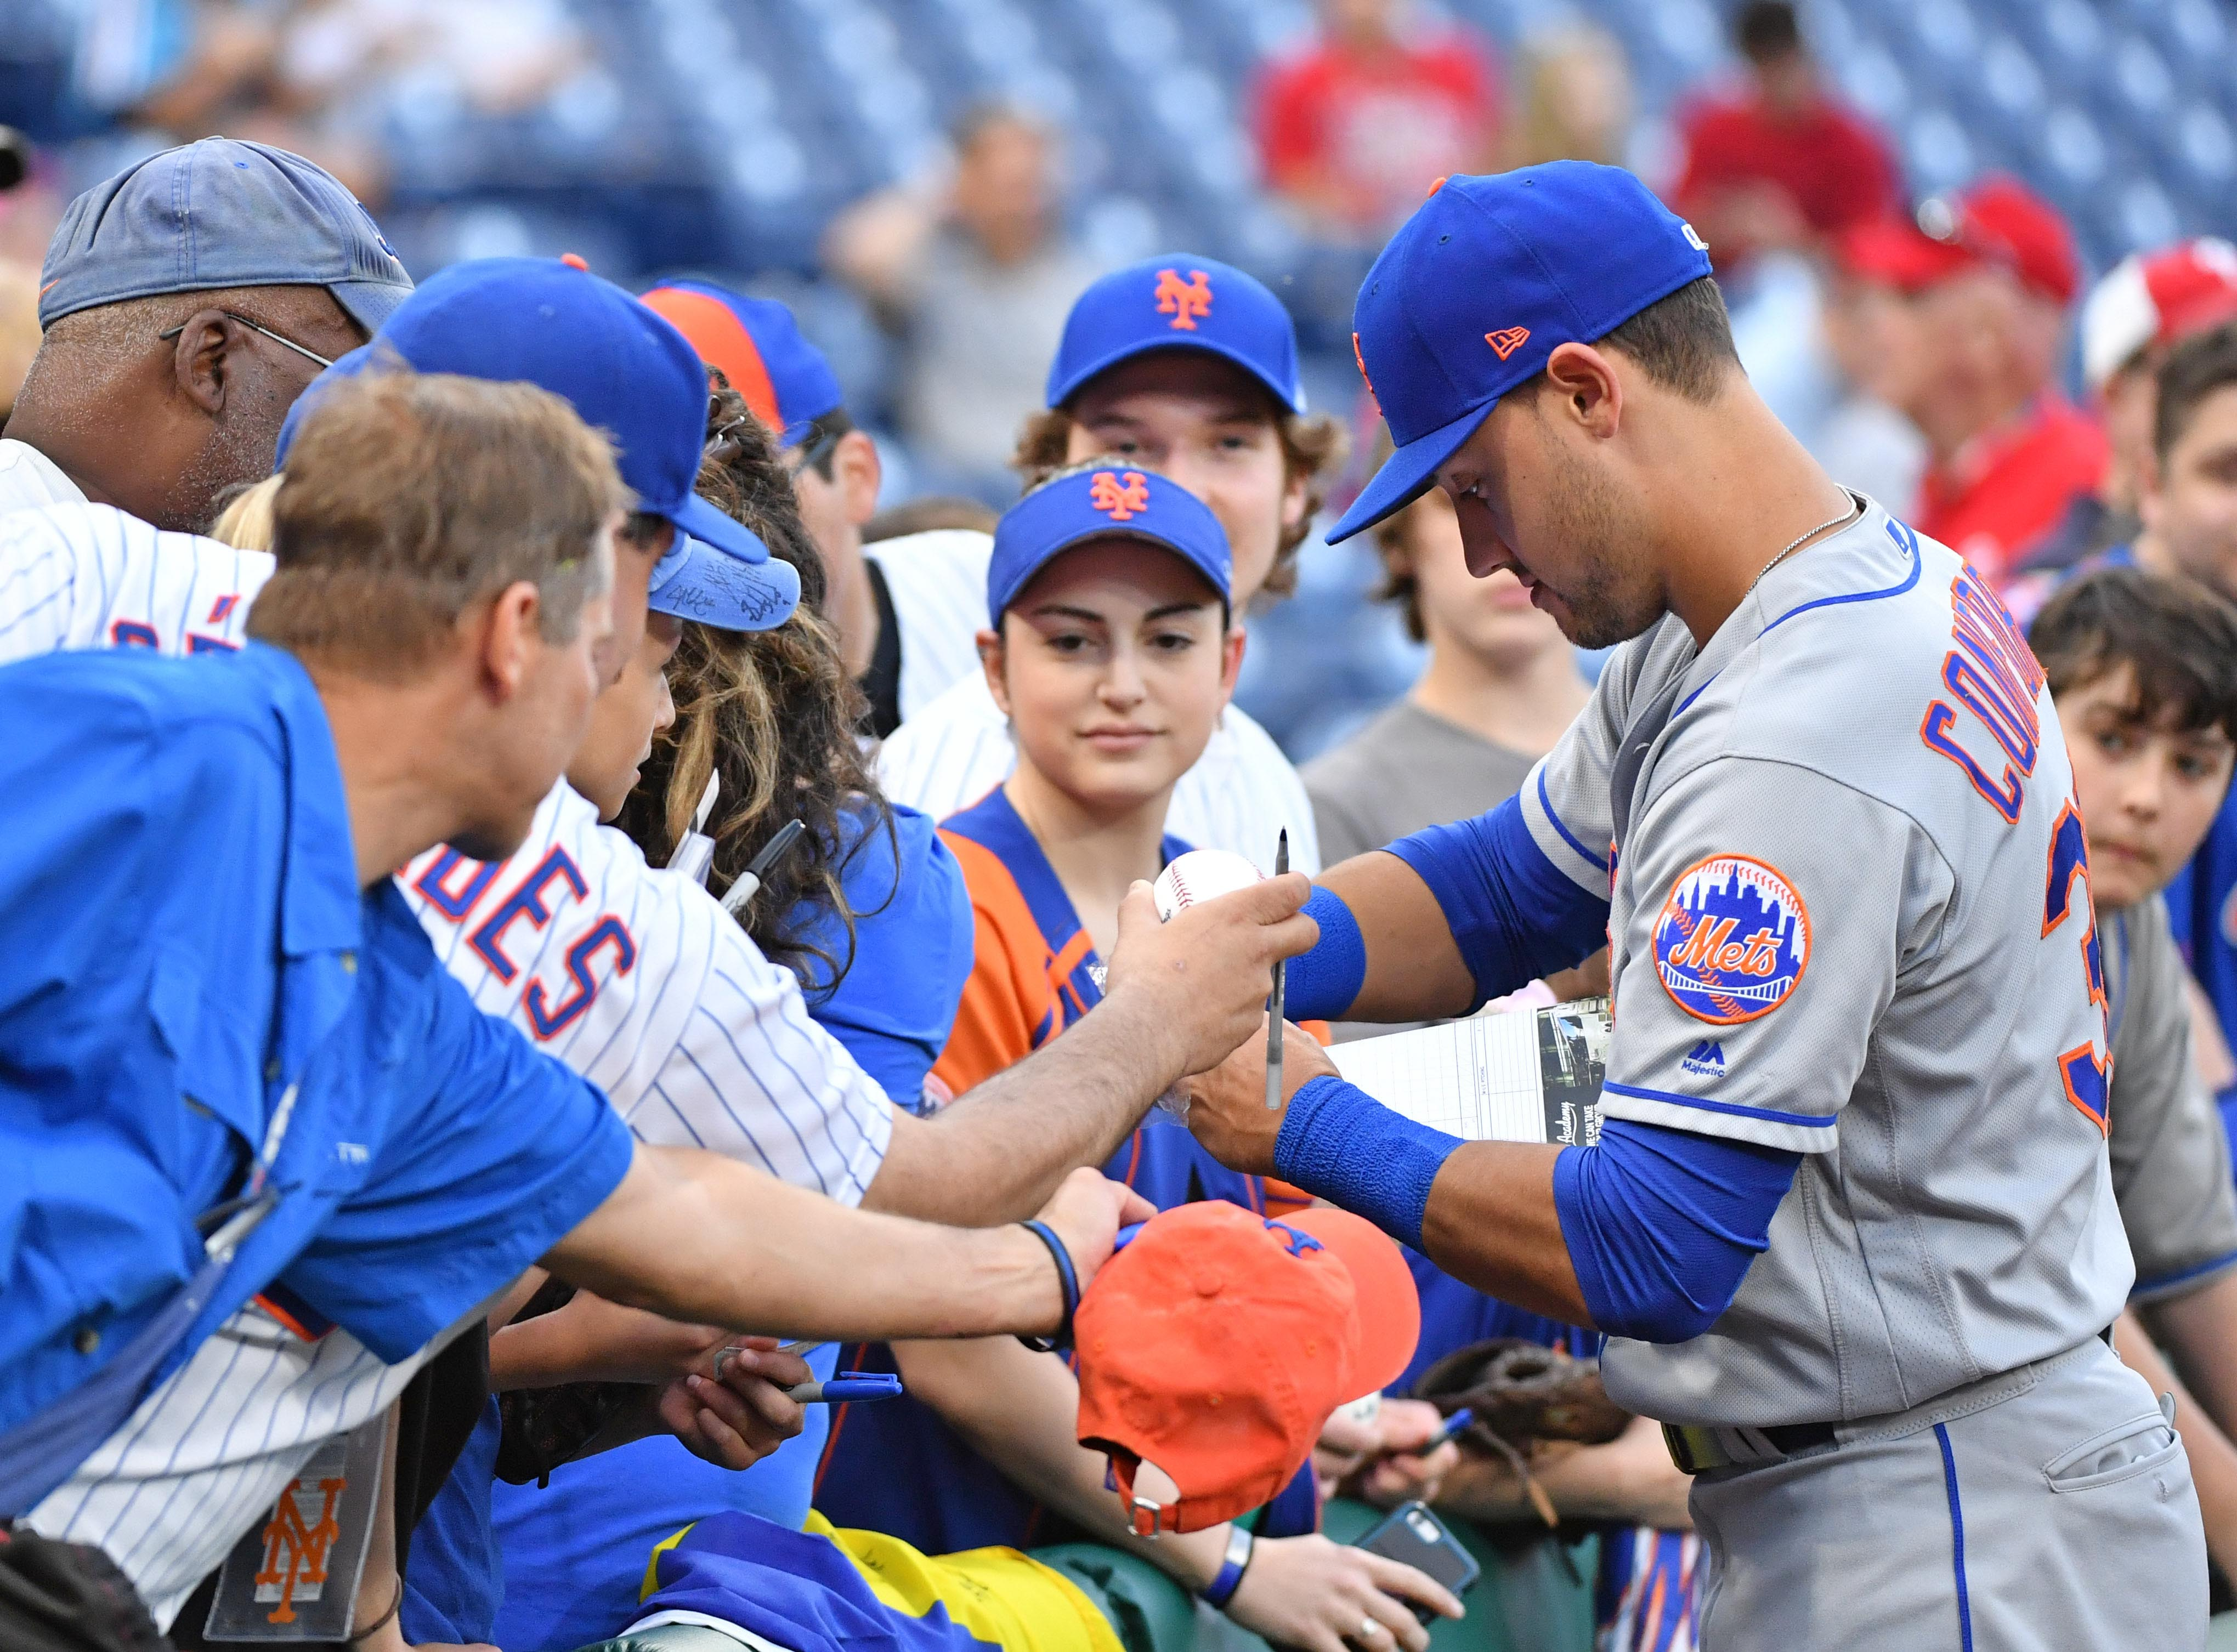 8/16/18 Game Preview: New York Mets at Philadelphia Phillies Game 1